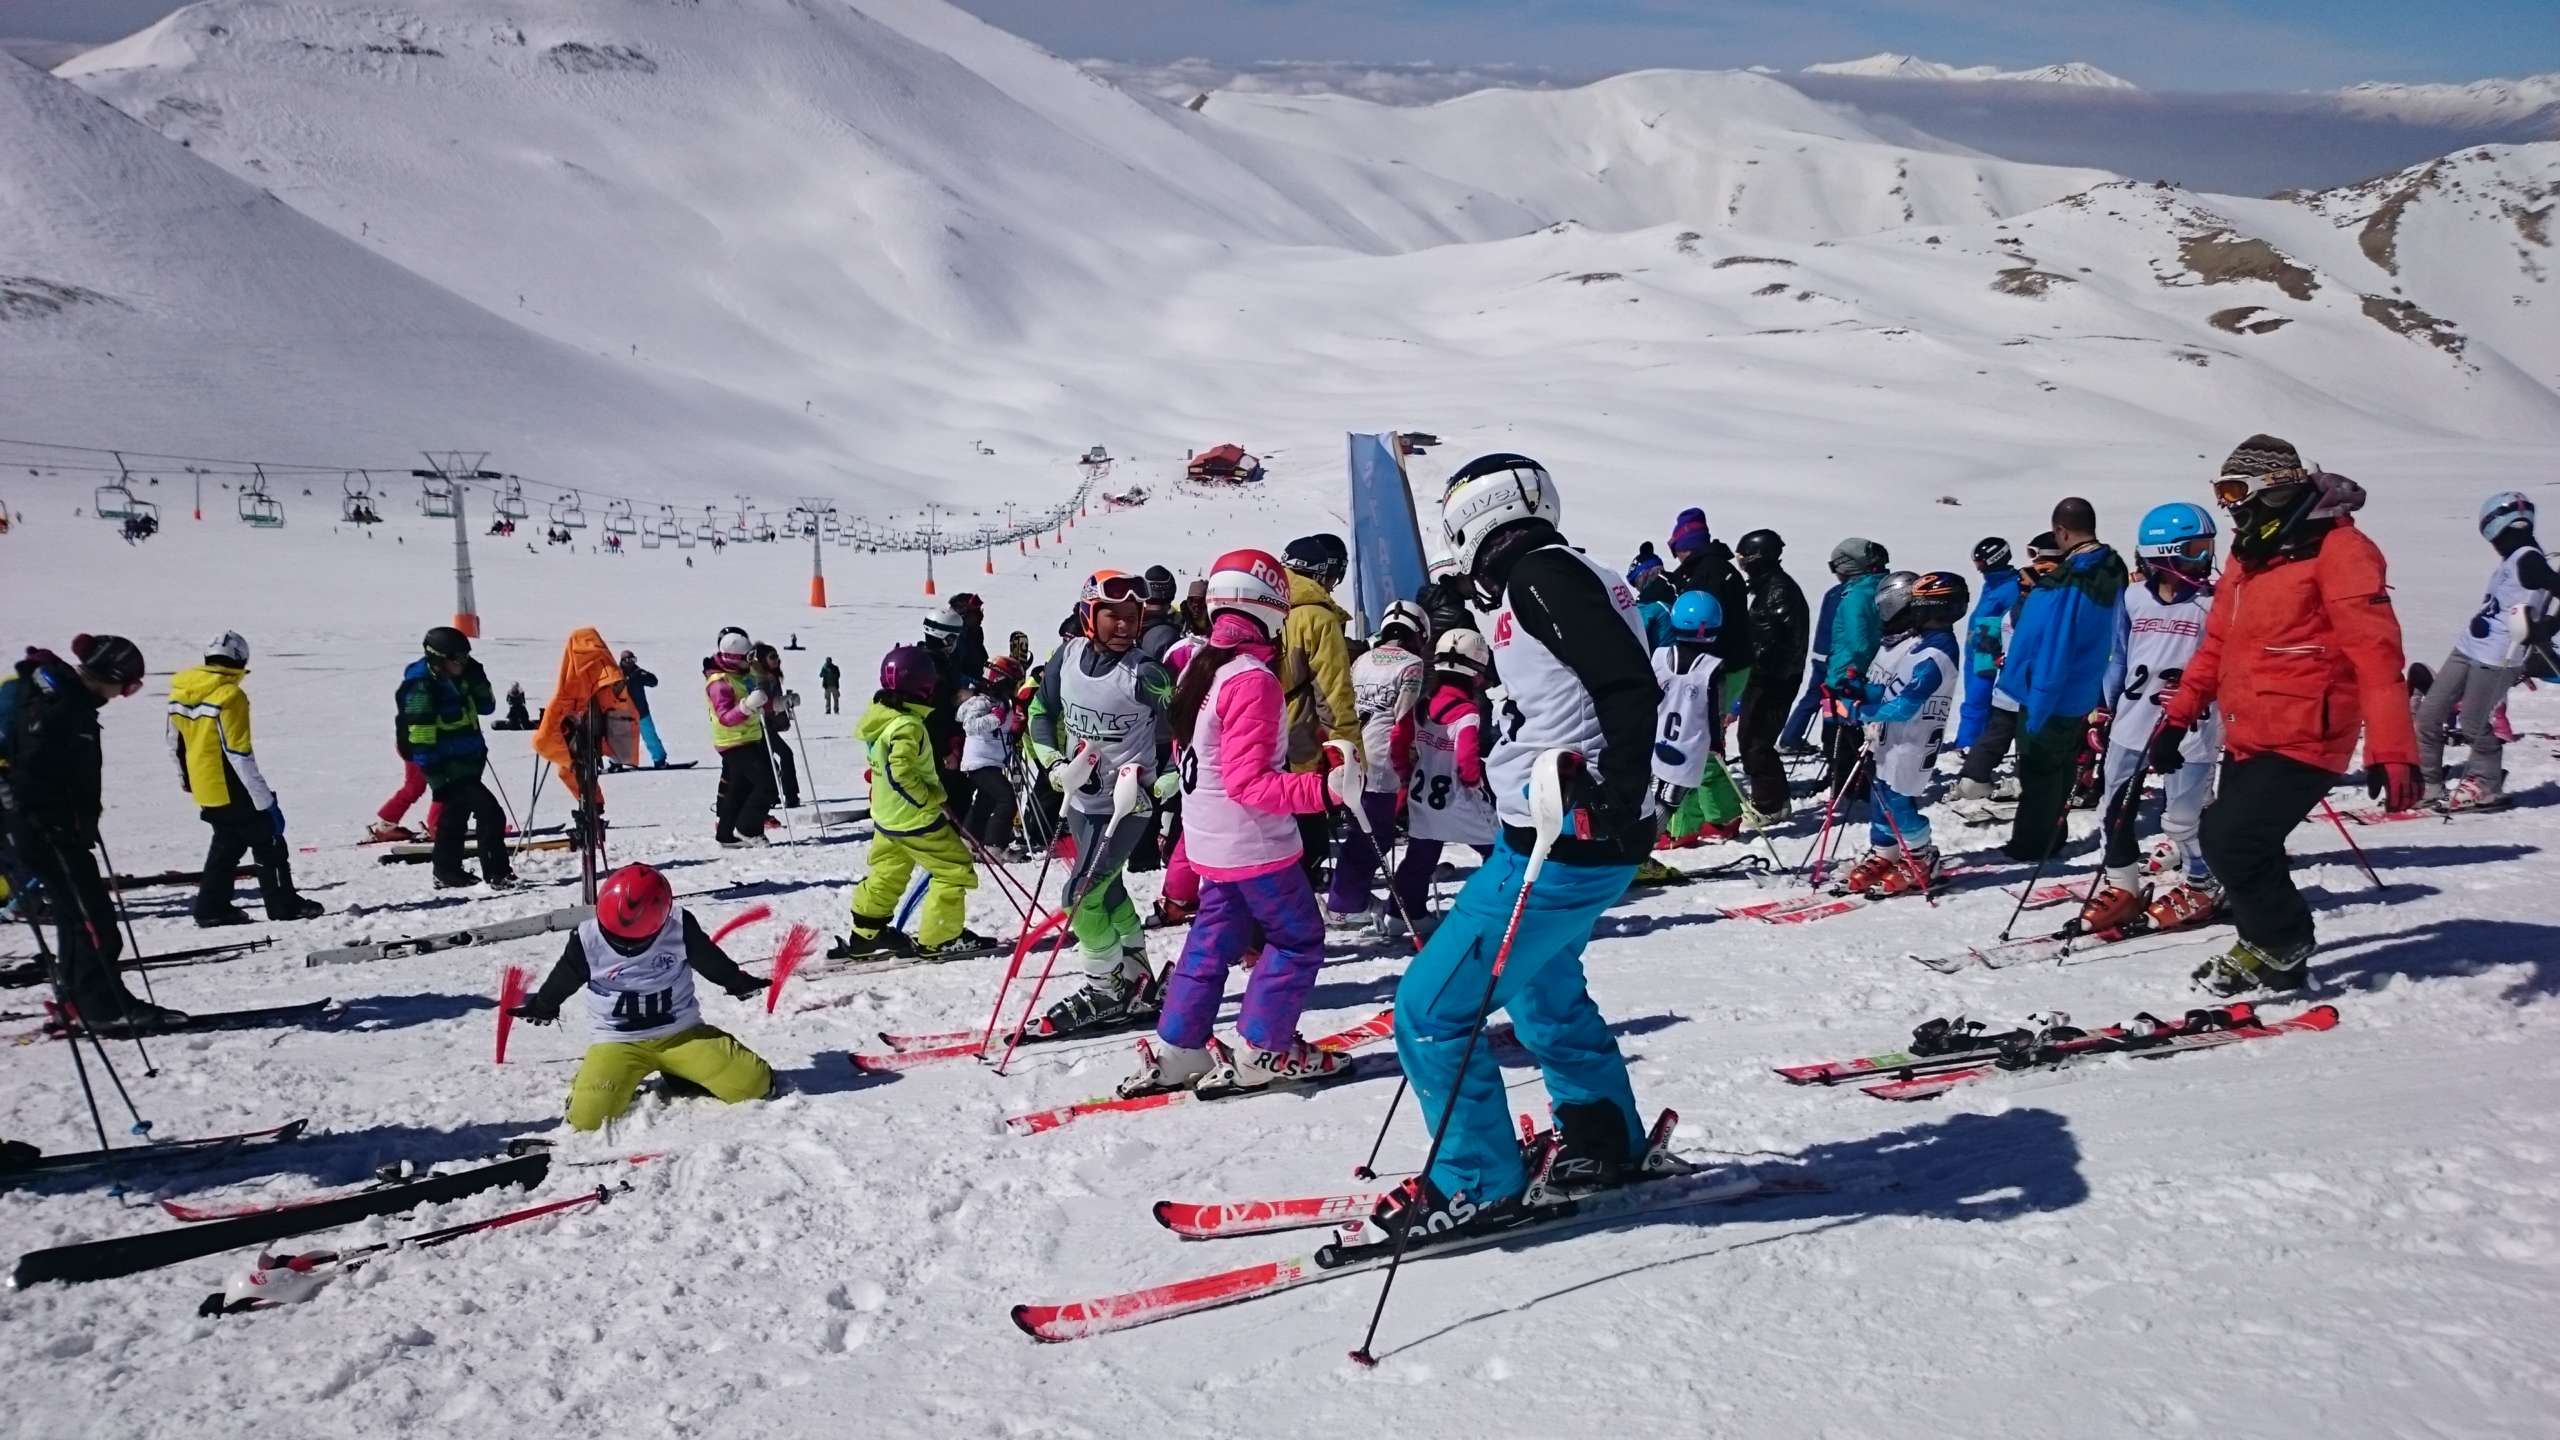 Ski for kids and adults